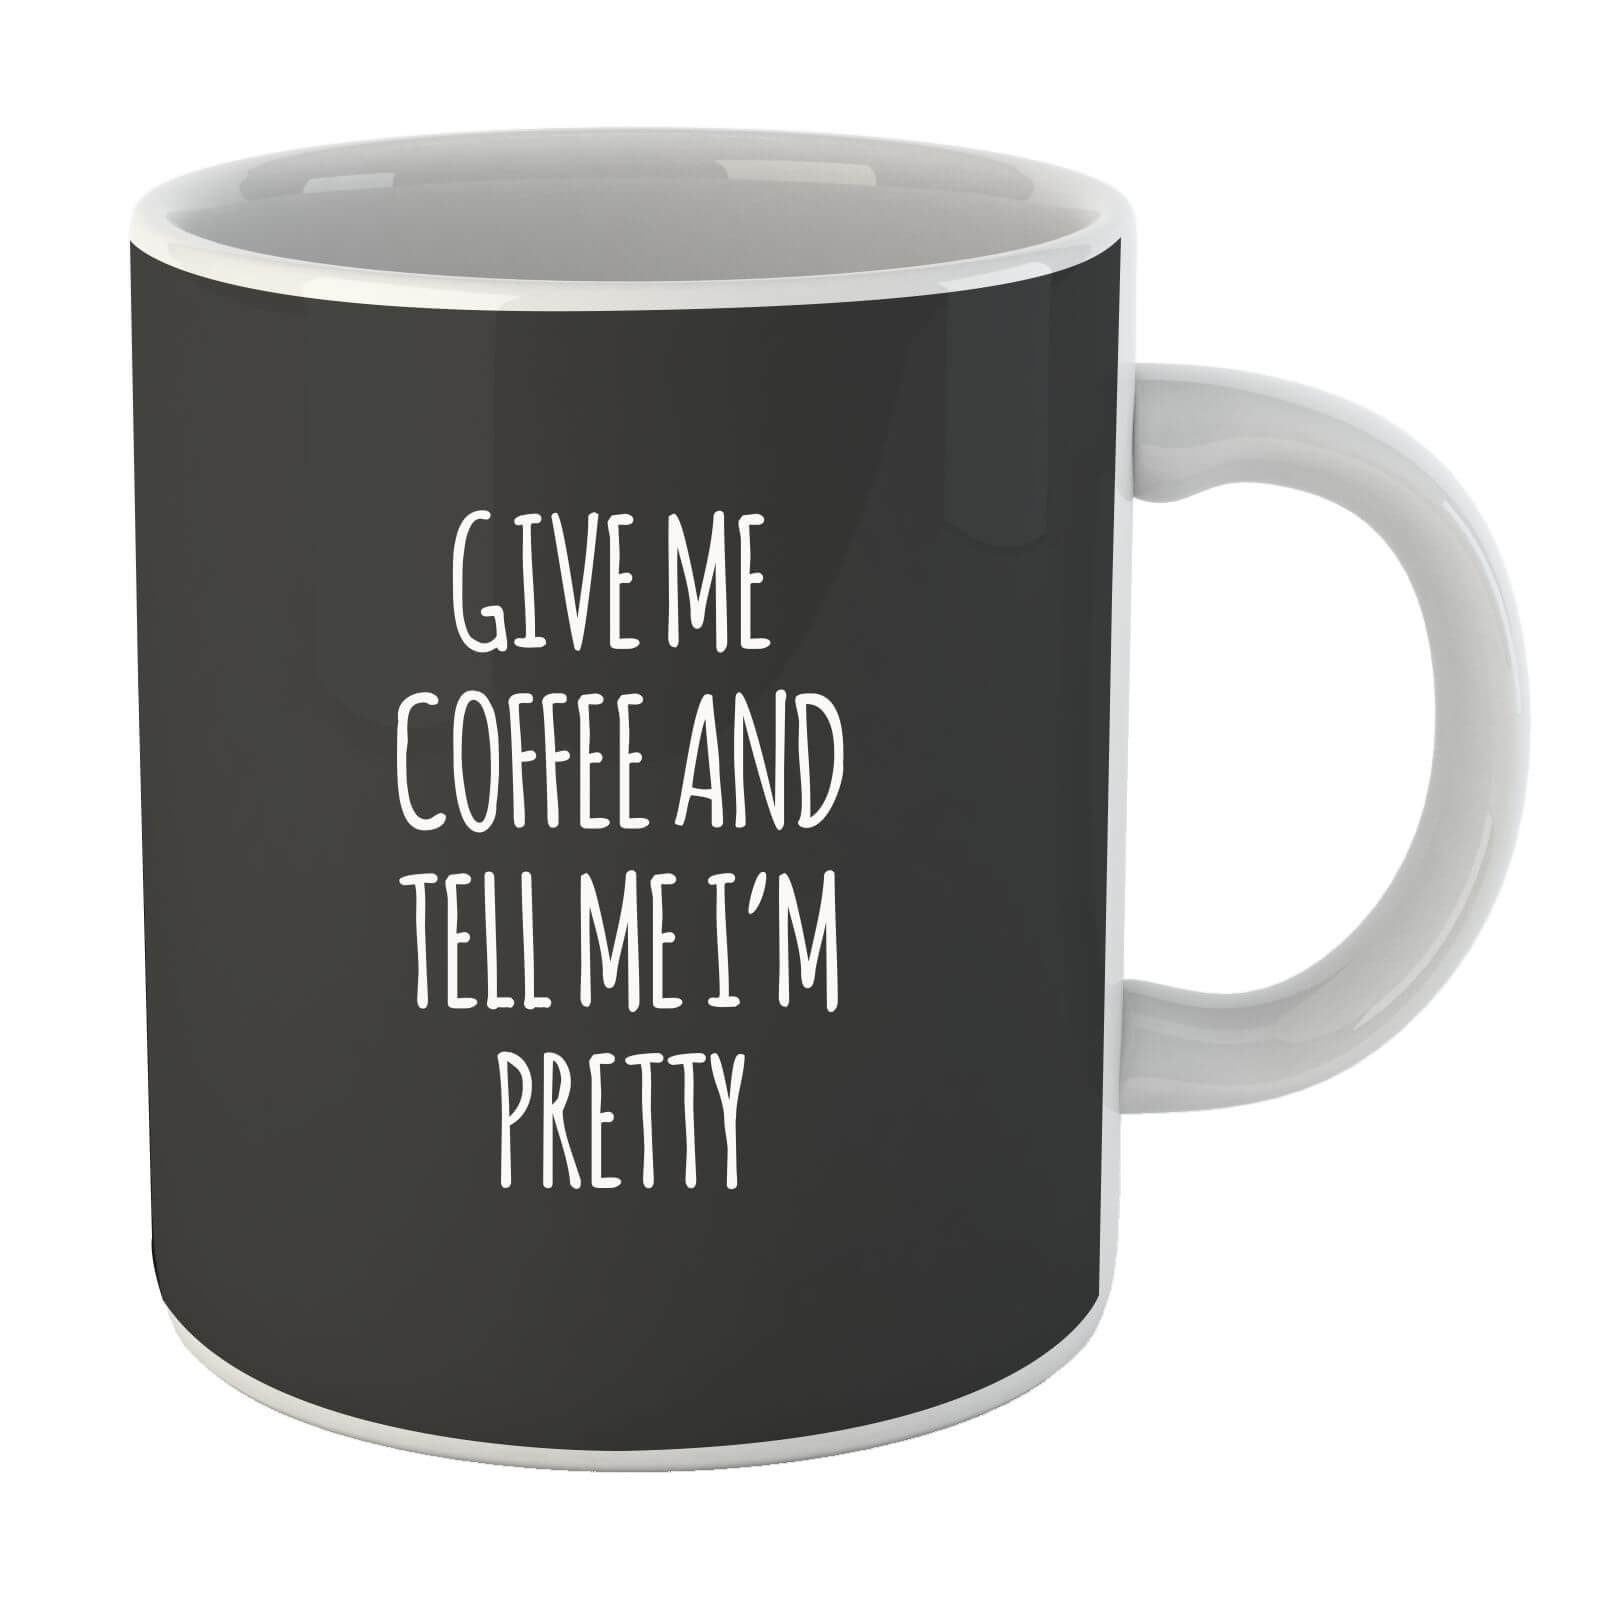 Give me Coffee and Tell me I